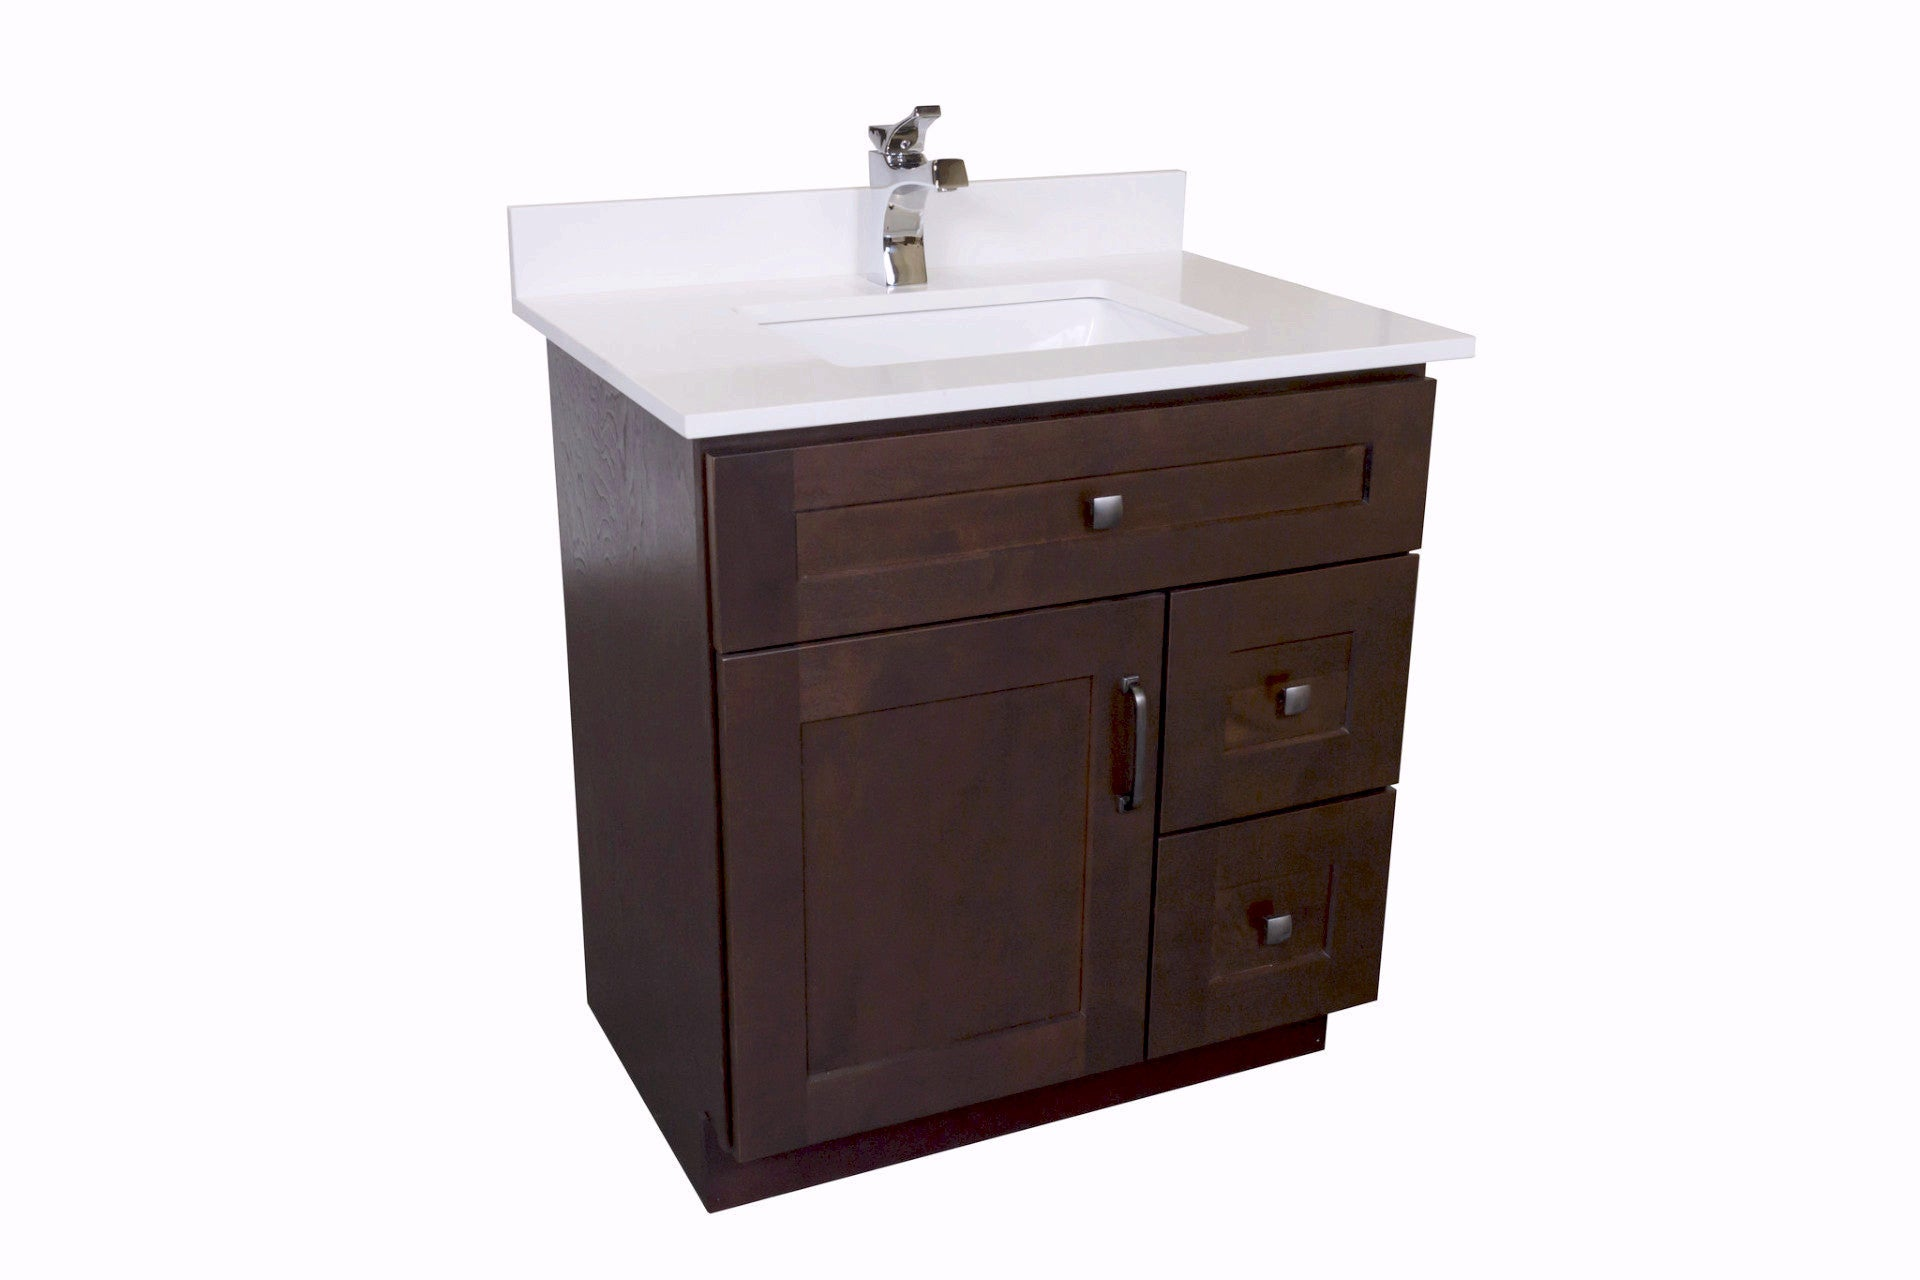 sink of ashley furniture silver drawers w indusperformance fresh bathroom with vanity mirror com cabinet trim mirrored elegant inch drawer